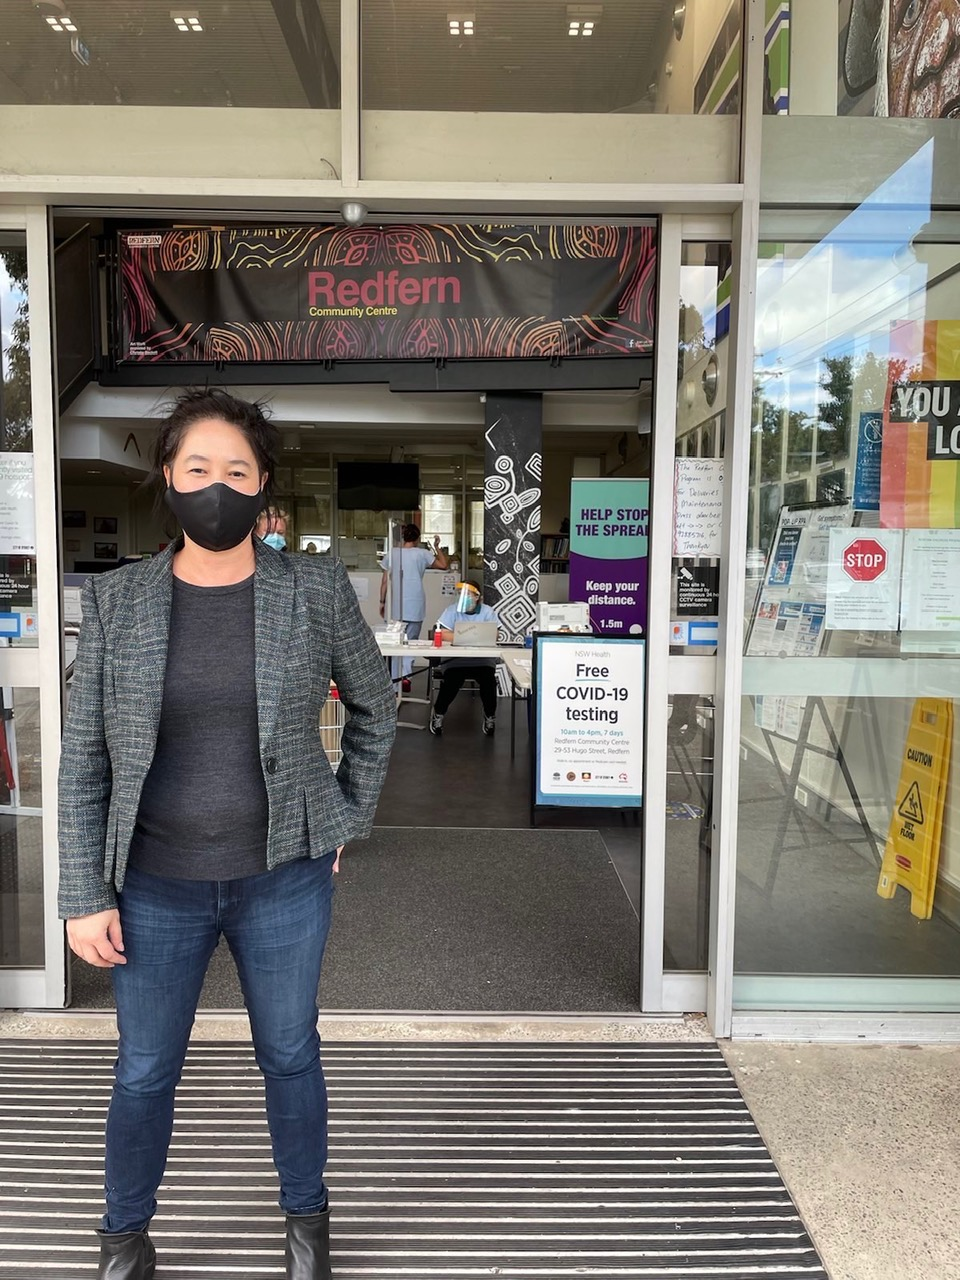 There is a new testing clinic at Redfern Community Centre